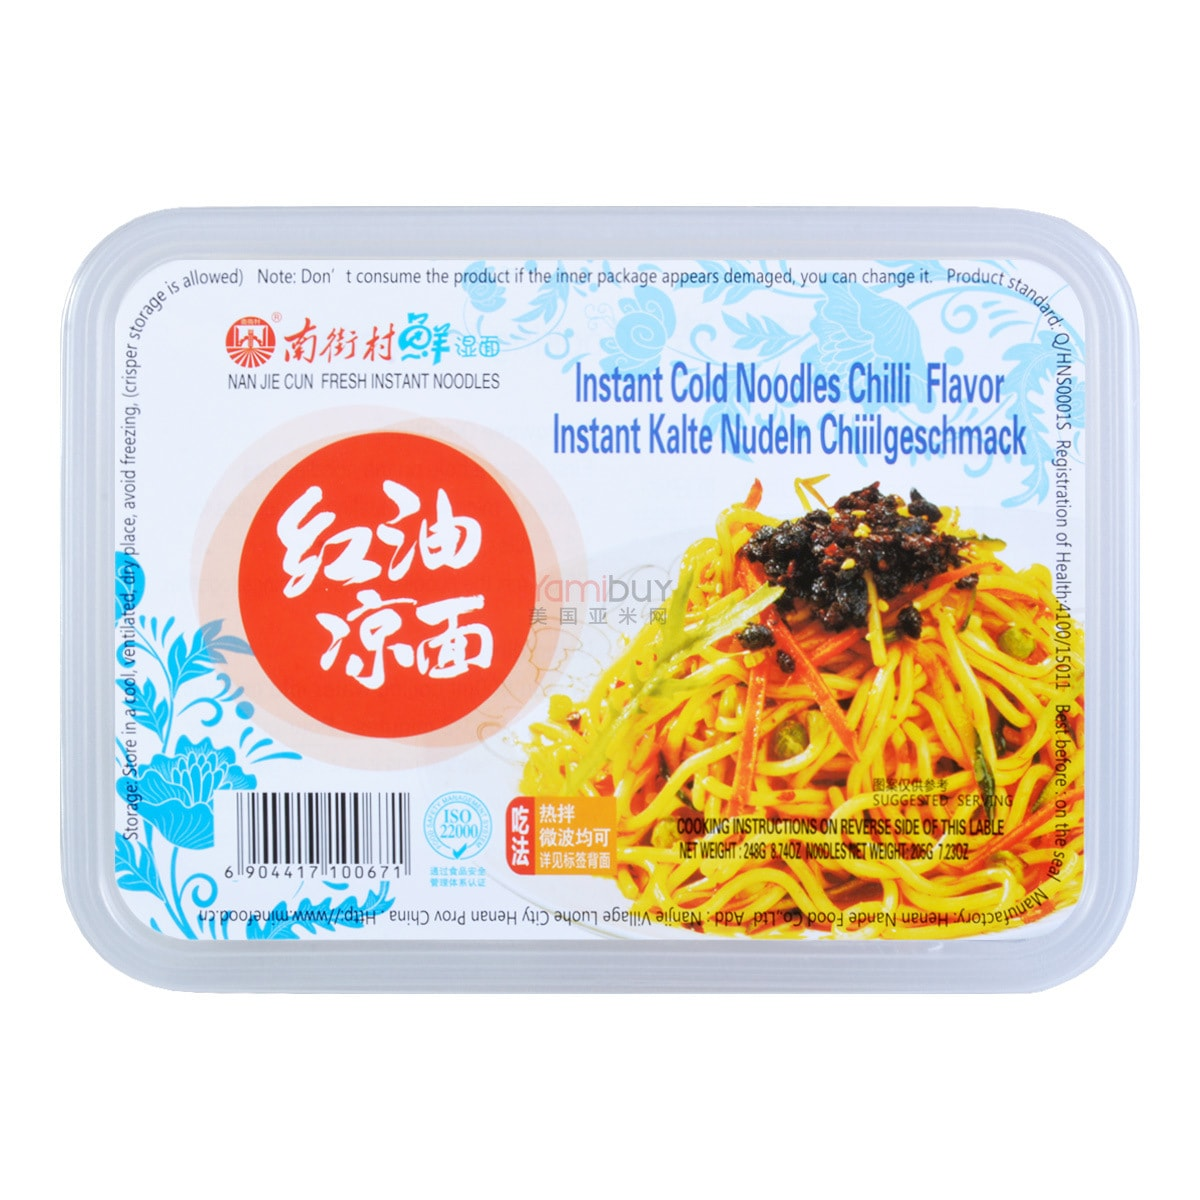 NANJIECUN Cold Noodle Chili Oil Flavor 248g